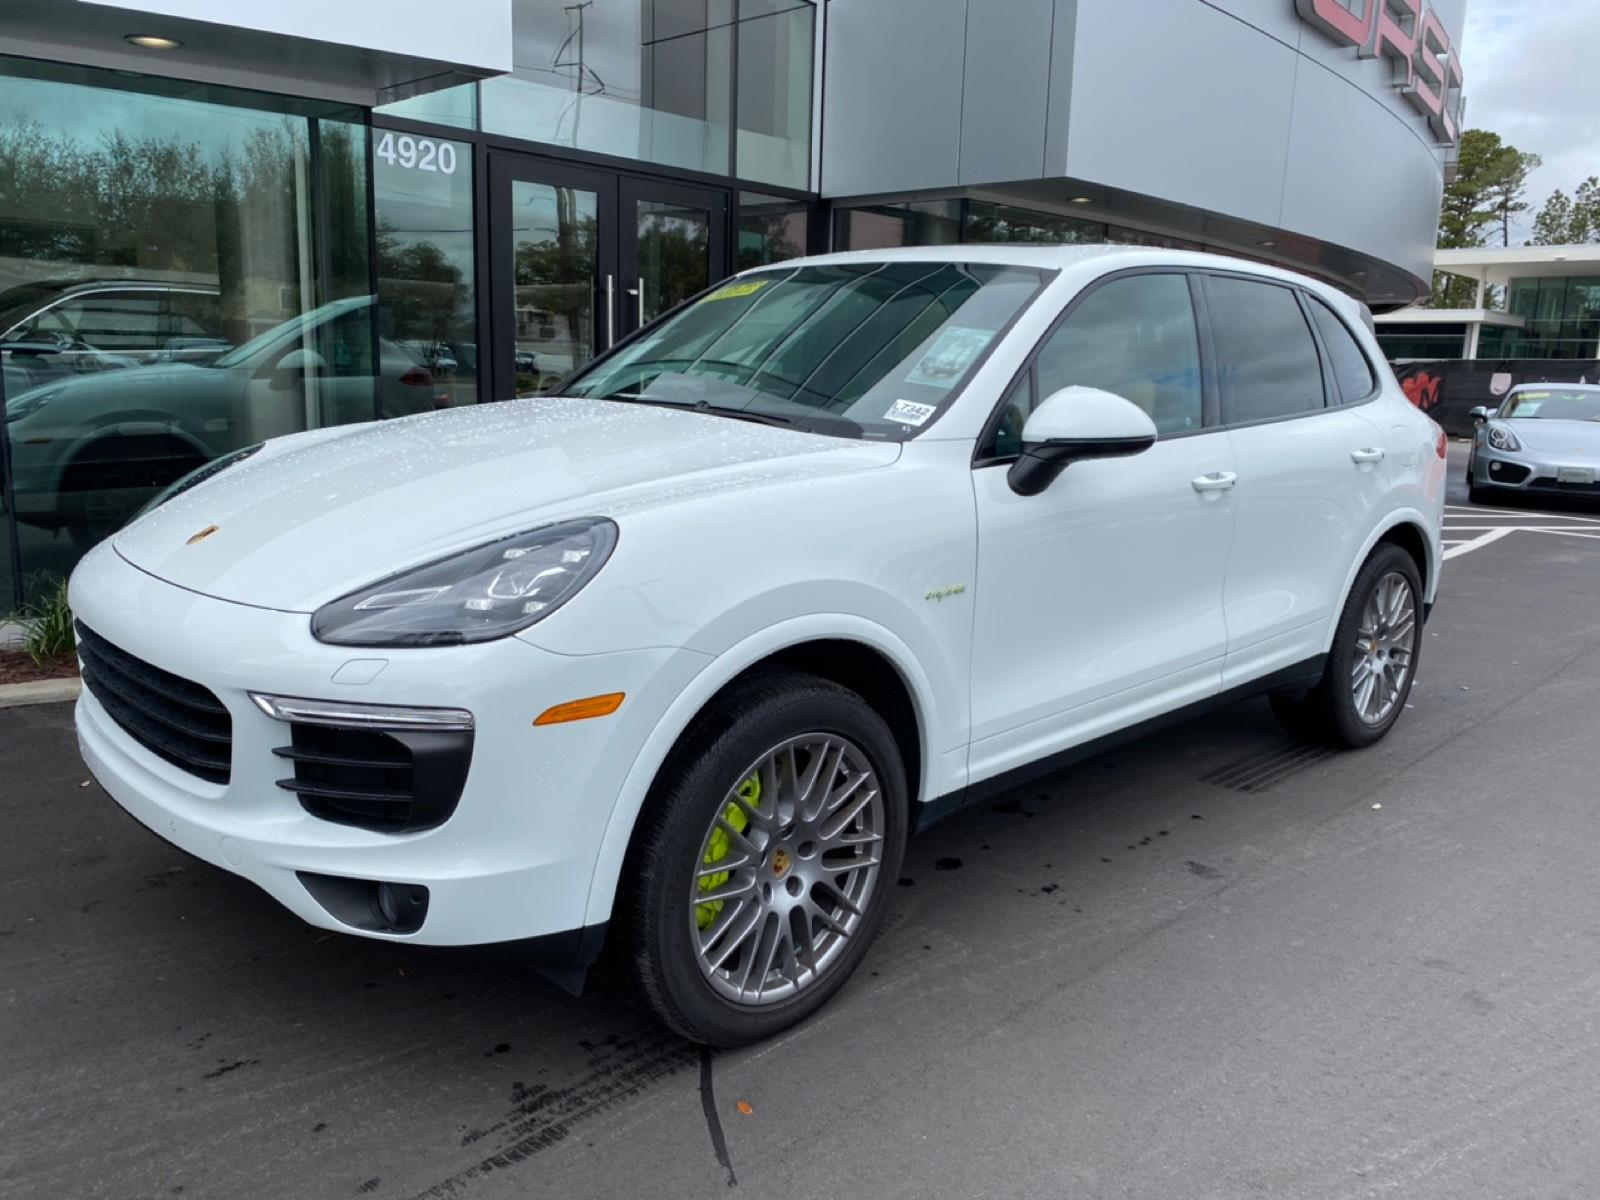 Certified Pre-Owned 2018 Cayenne S Platinum Edition E-Hybrid